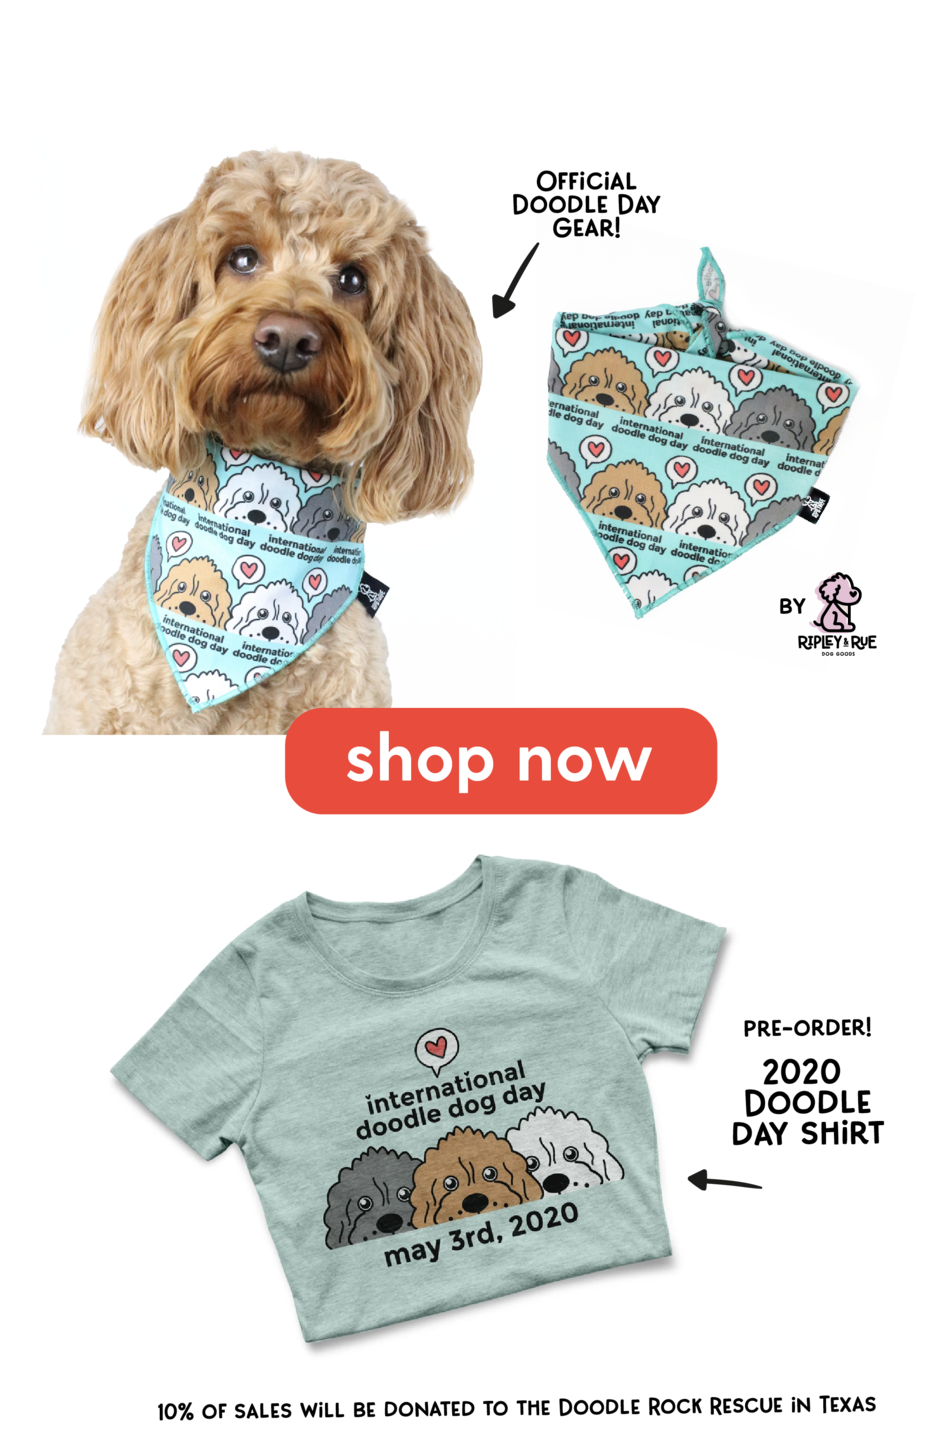 international doodle dog day gear